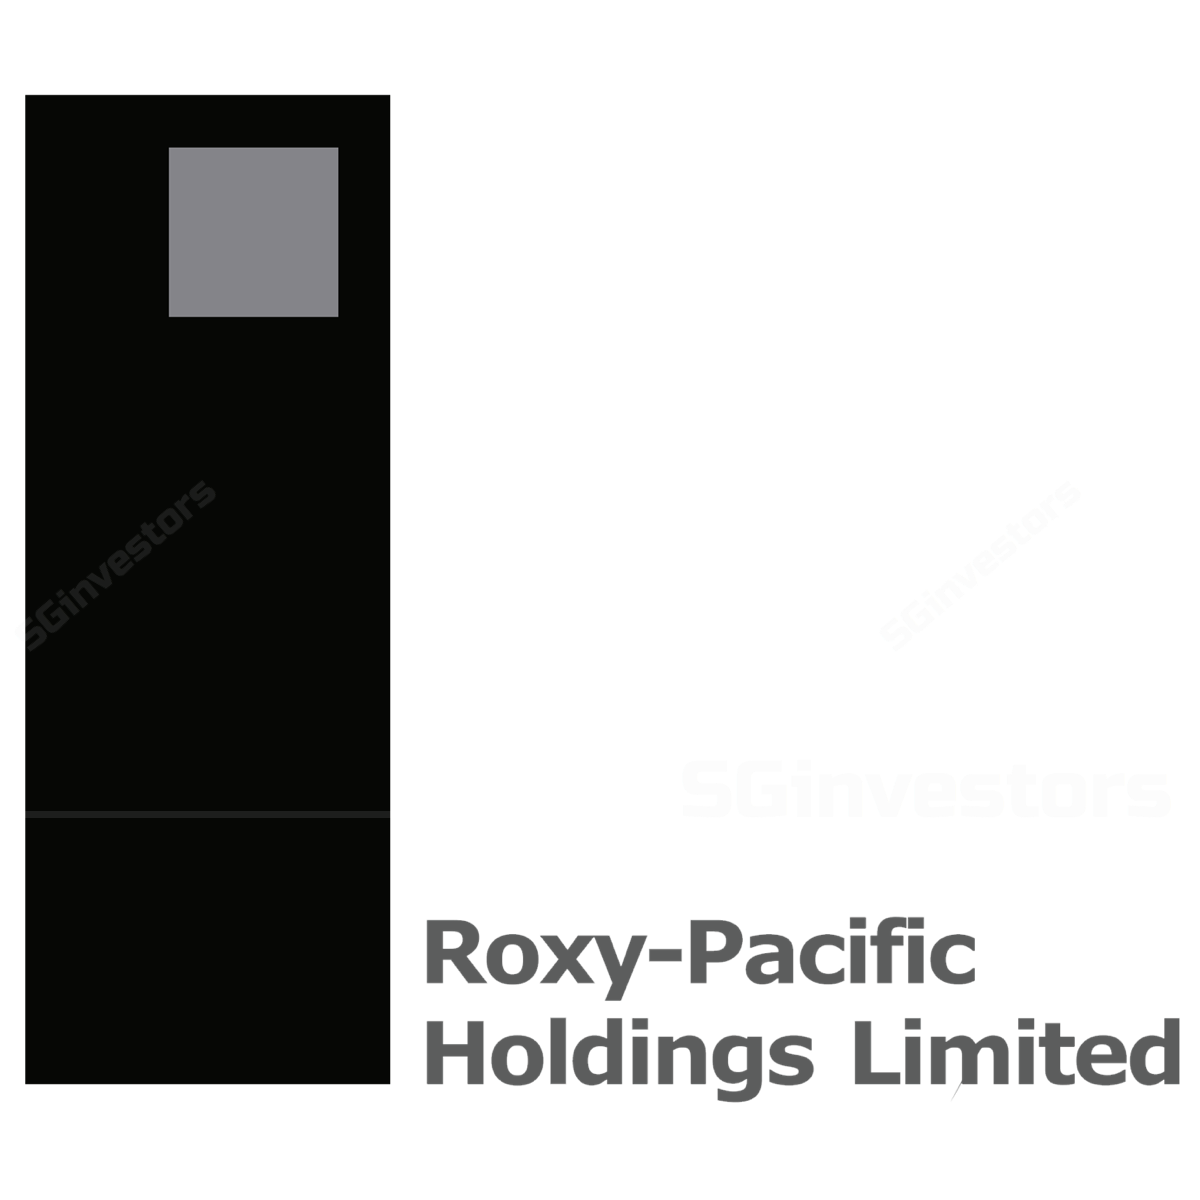 Roxy-Pacific Holdings - DBS Vickers 2018-05-08: Hip Hip Hooray!